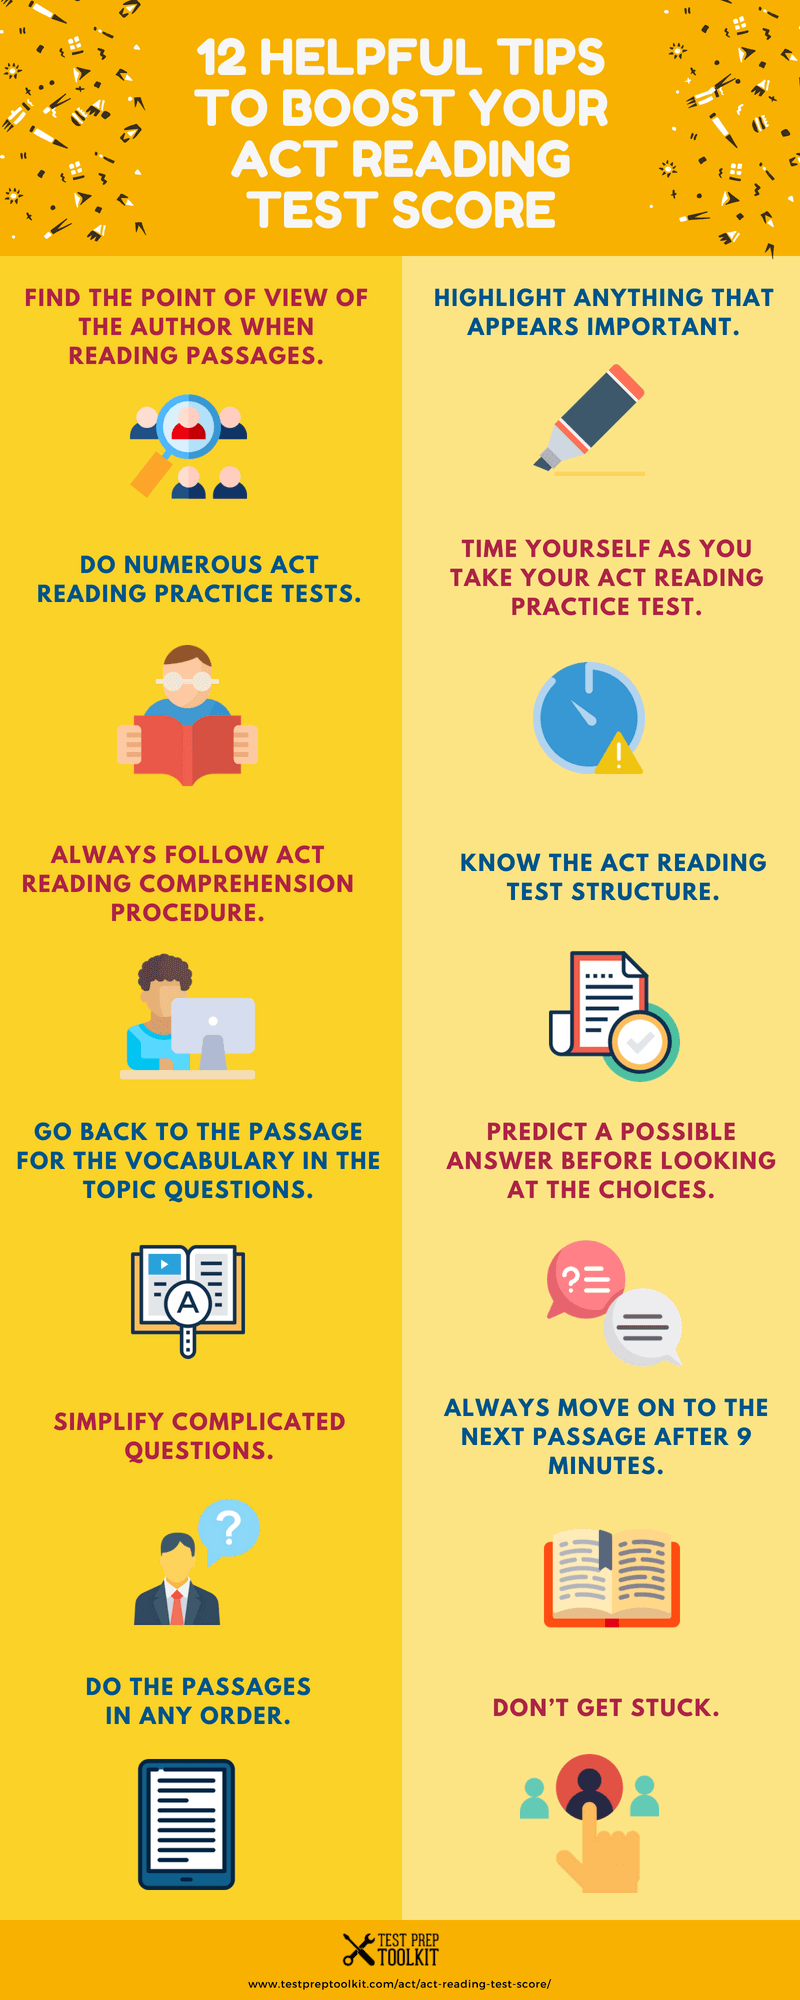 12 Helpful Tips To Boost Your ACT Reading Test Score Infographic